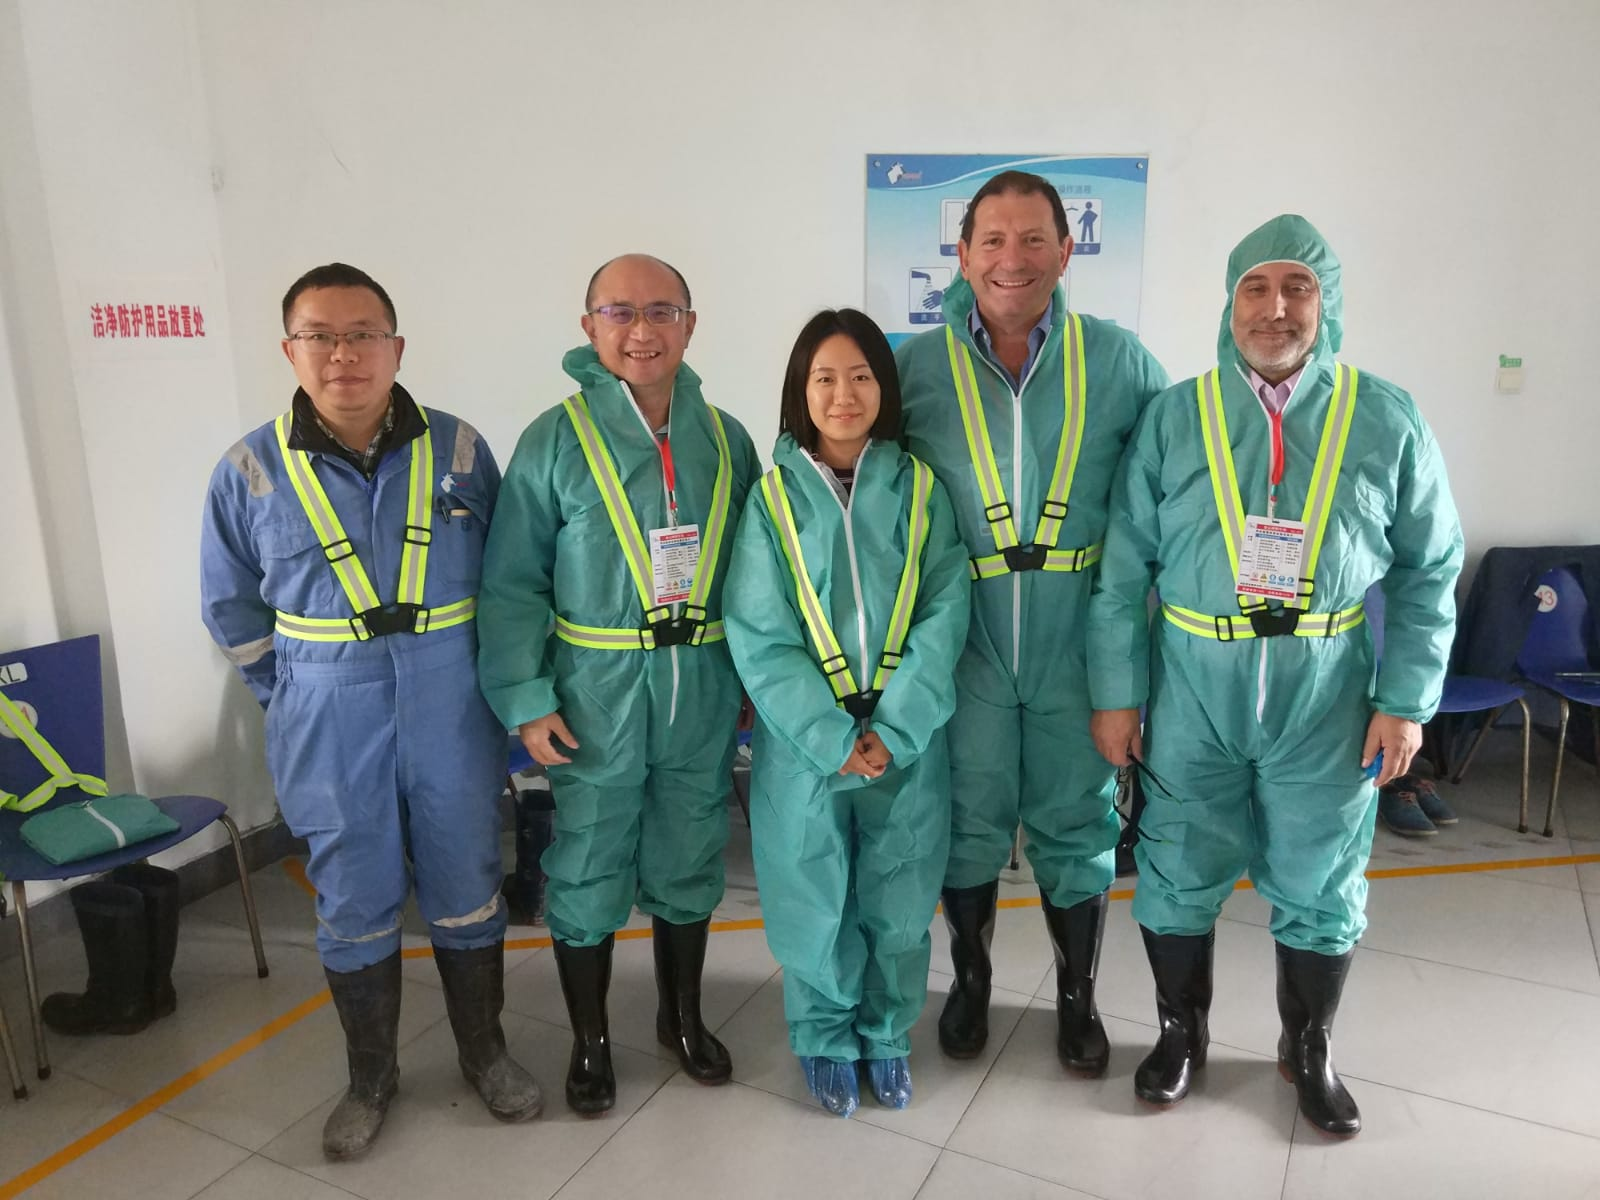 Spanish experts Pablo Llorente and Fco Javier Giralda in one of their farm visits in China